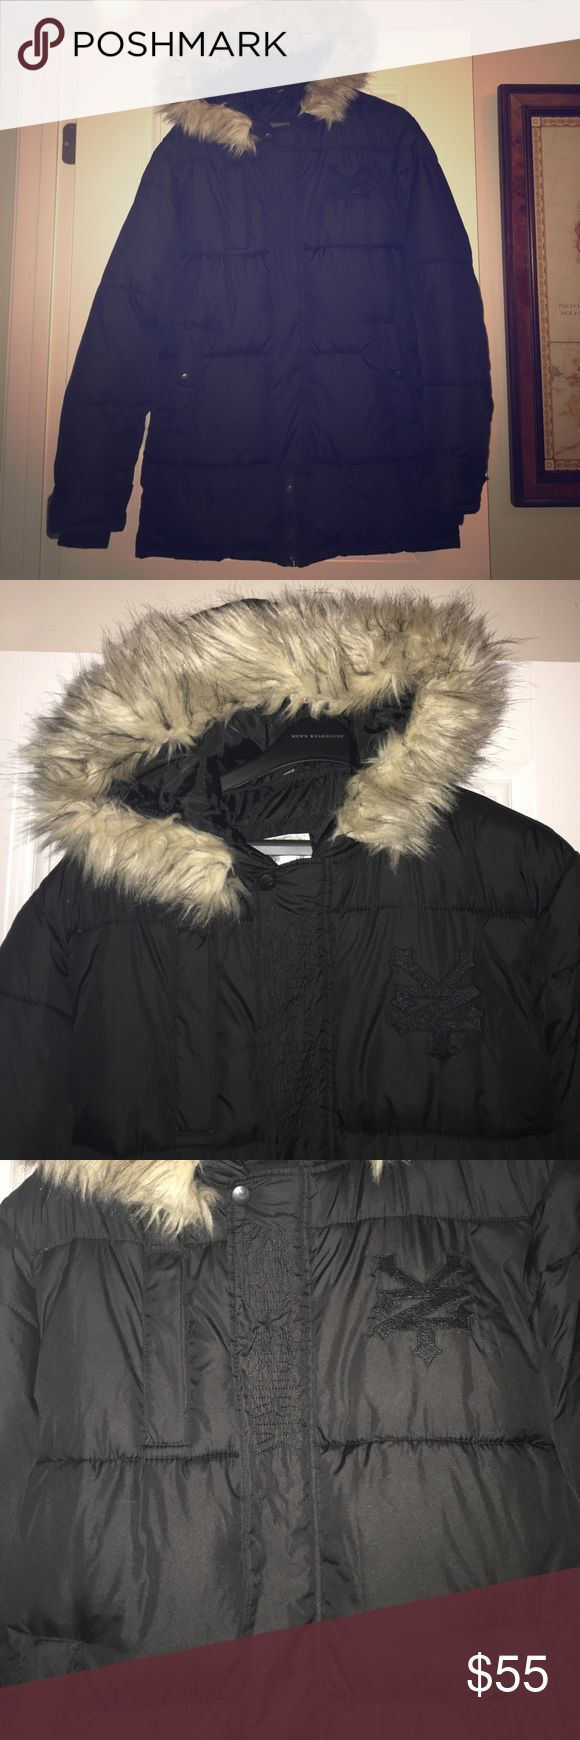 Zoo York Unbreakable Men's Winter Puffer Jacket Zoo York Unbreakable Men's Winter Puffer Jacket with Faux Fur Hood ❄️ size medium ❄️ perfect condition! ❄️ this is taking up a lot of room in the closet! Needs to go! Offers accepted? Zoo York Jackets & Coats Puffers